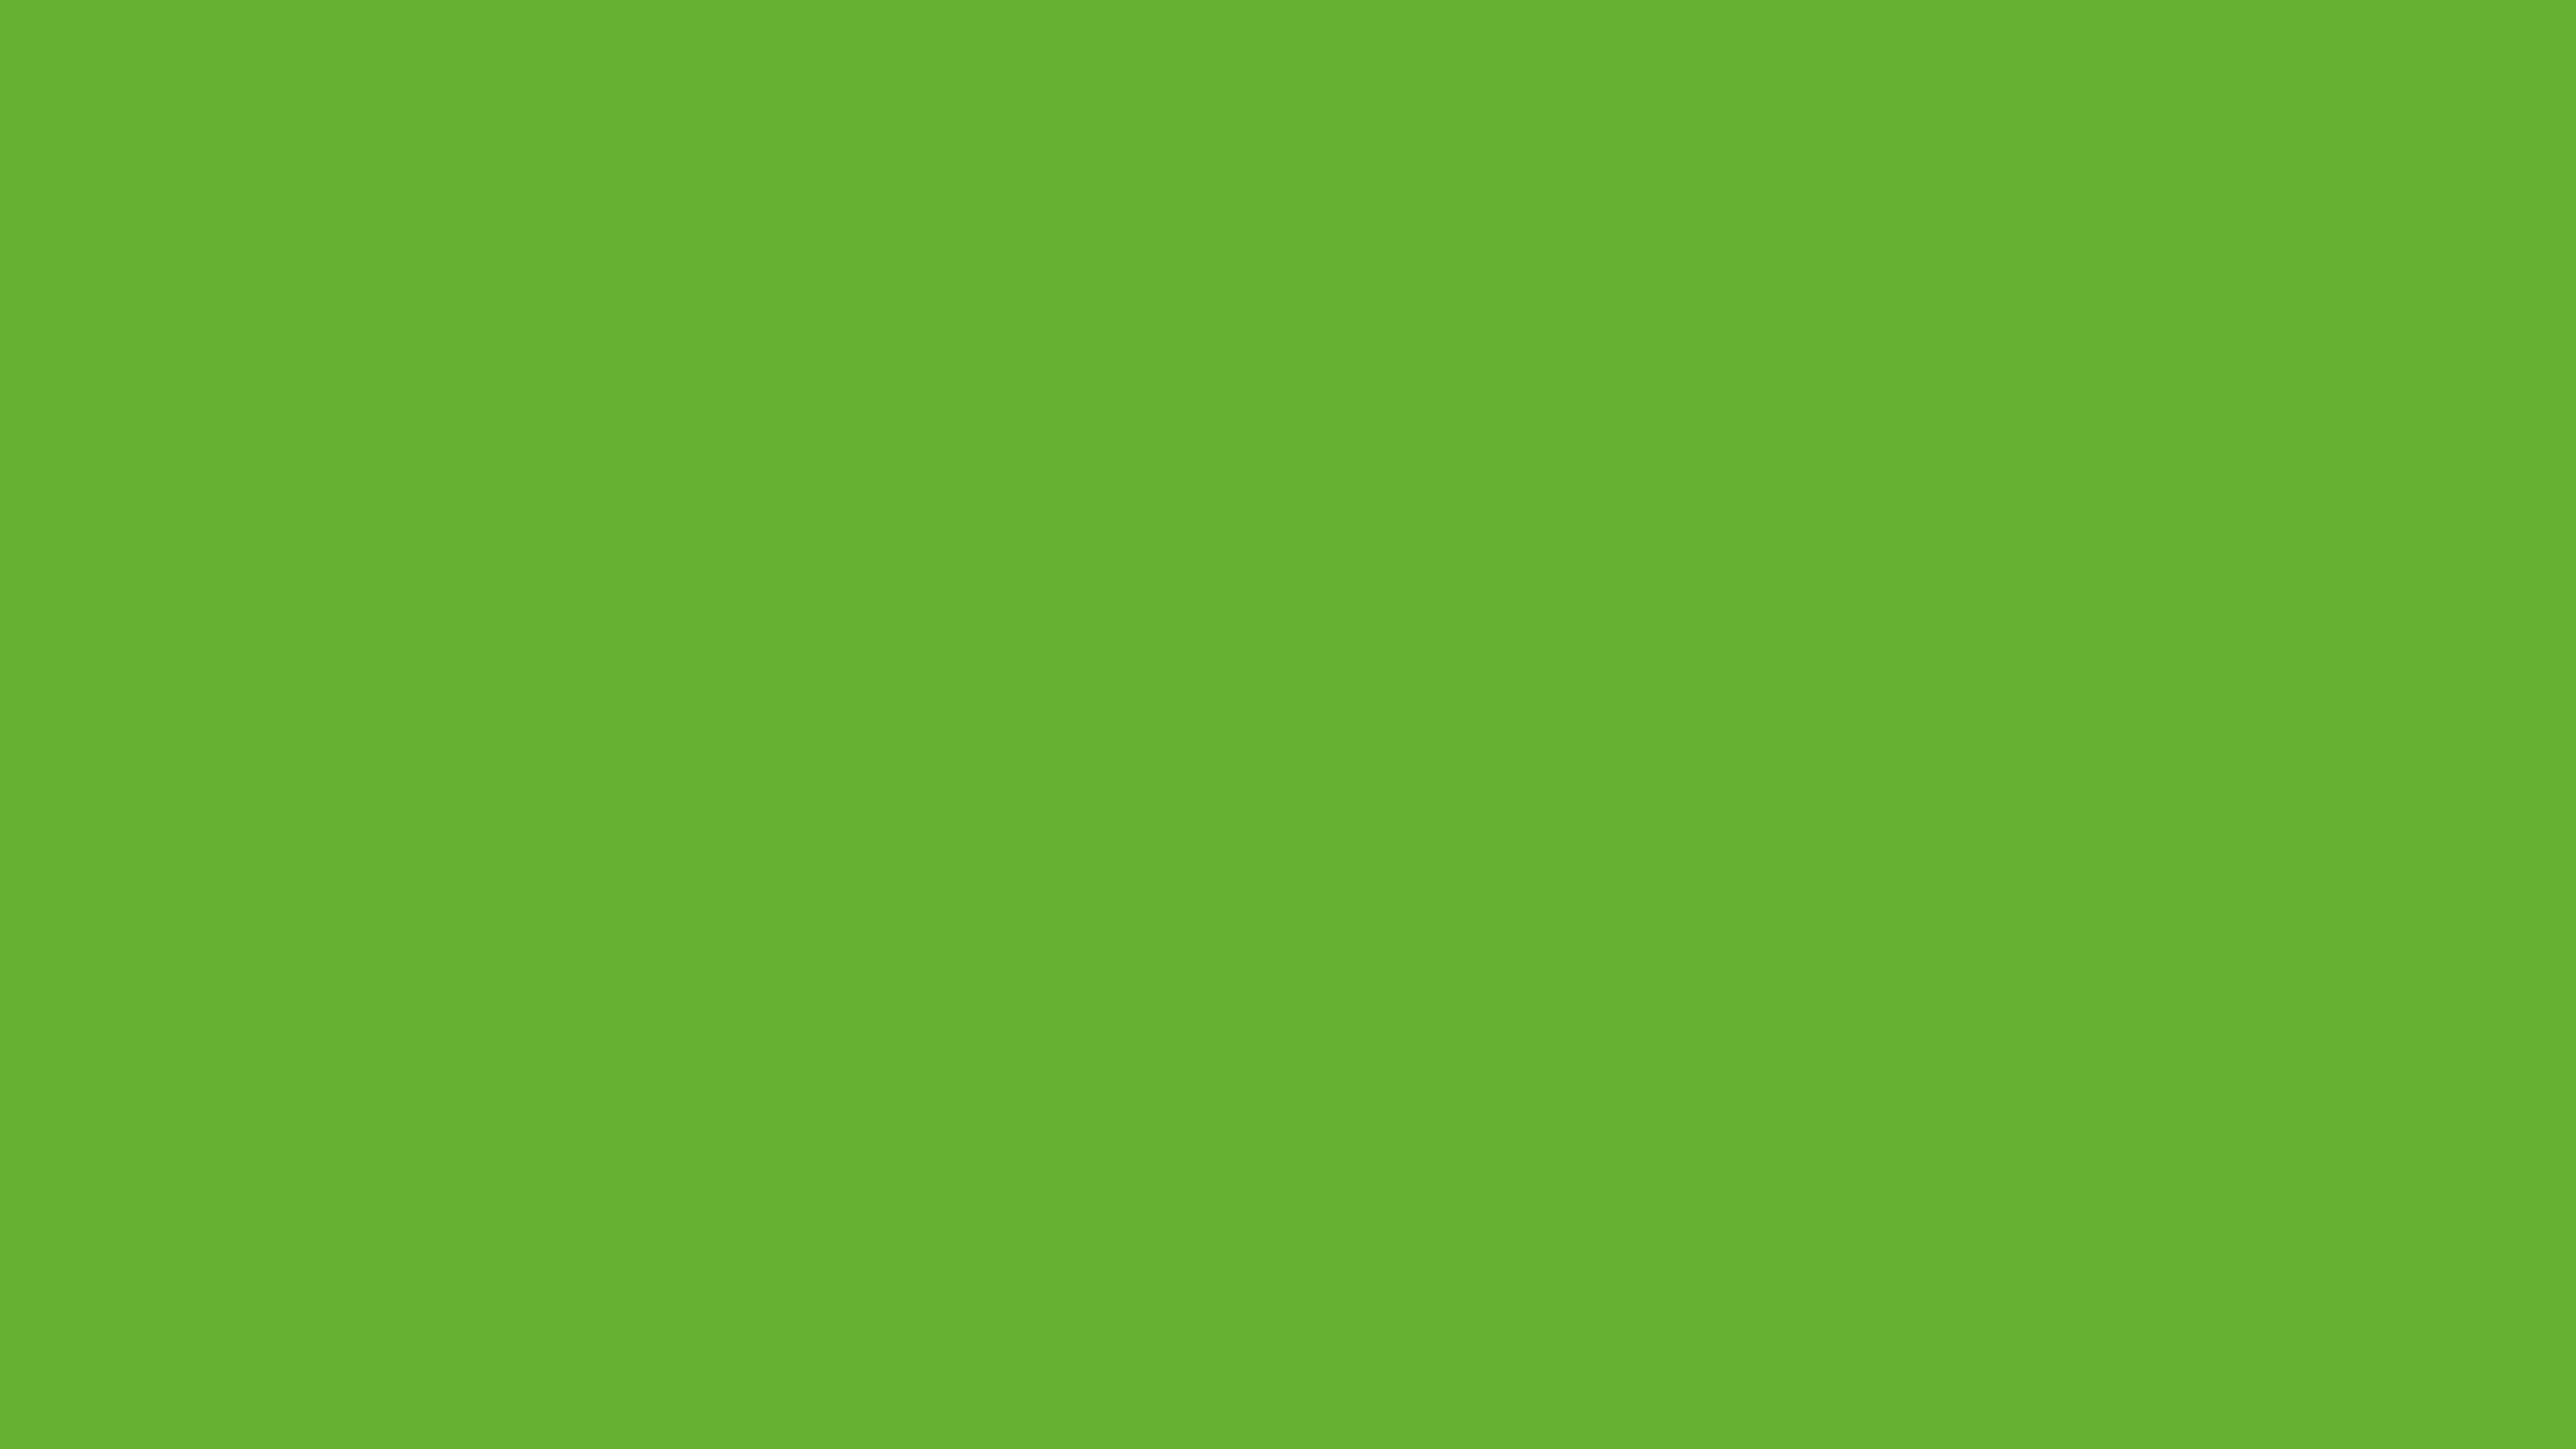 7680x4320 Green RYB Solid Color Background